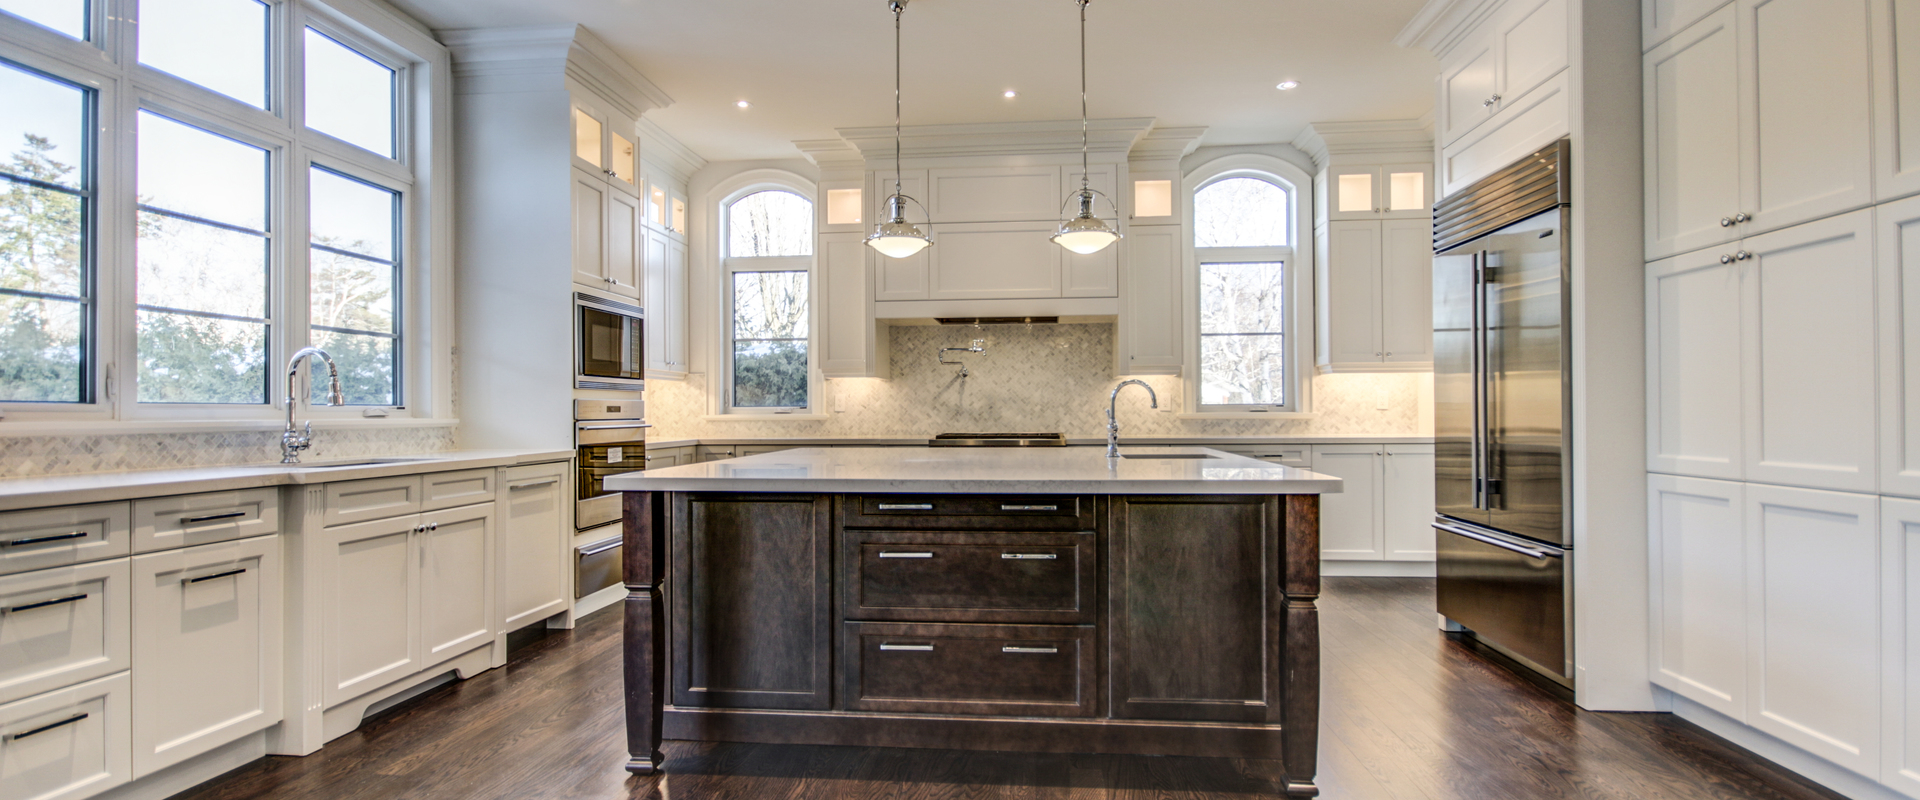 Custom Home Builders and Contractors in Oakville, Ontario, Canada